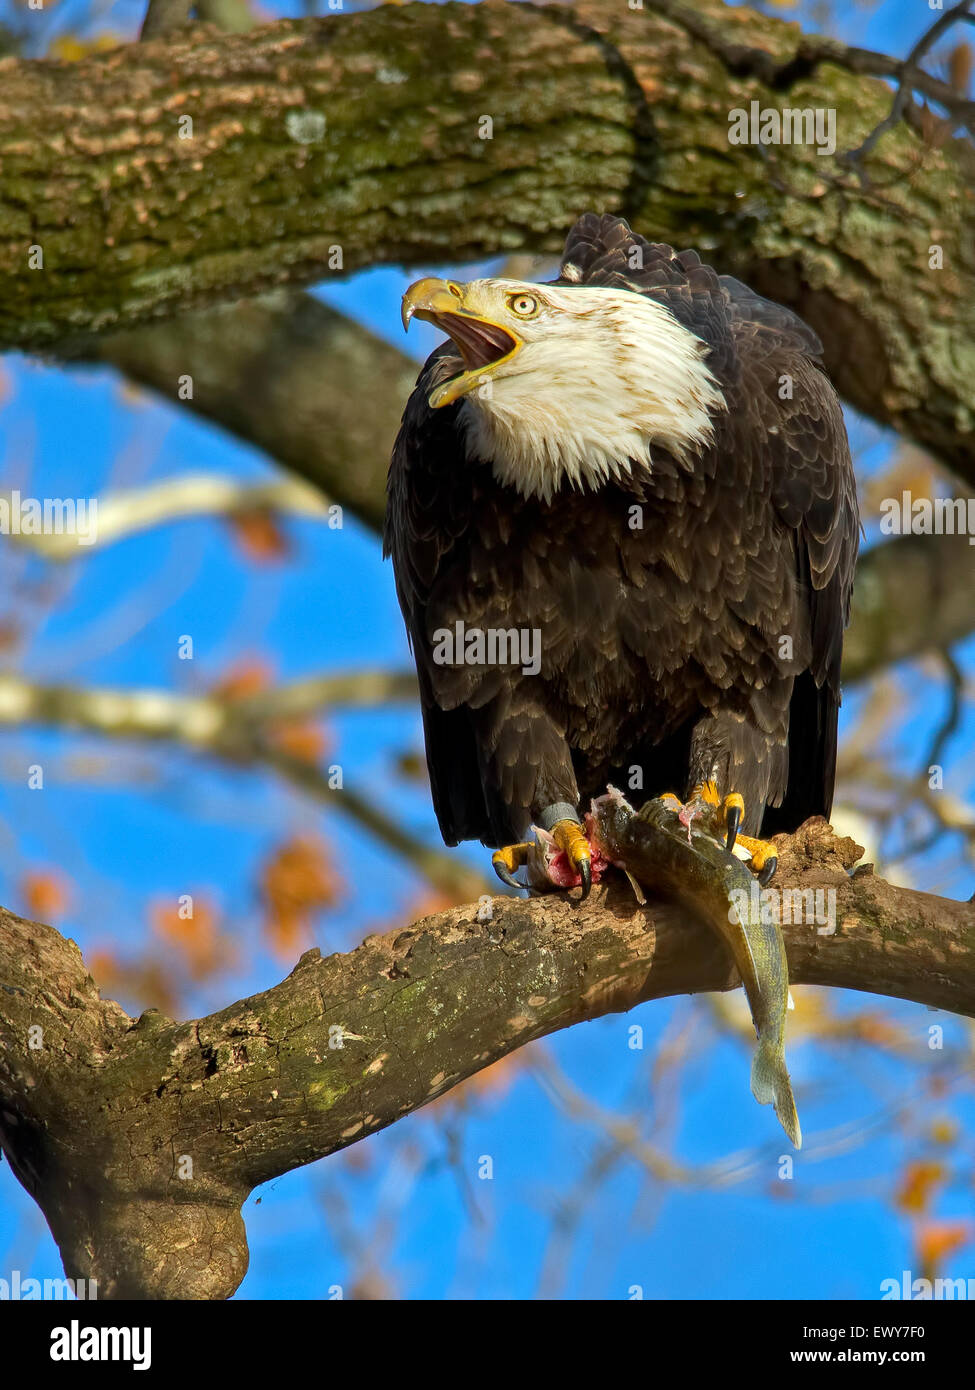 American Bald Eagle with Fish - Stock Image